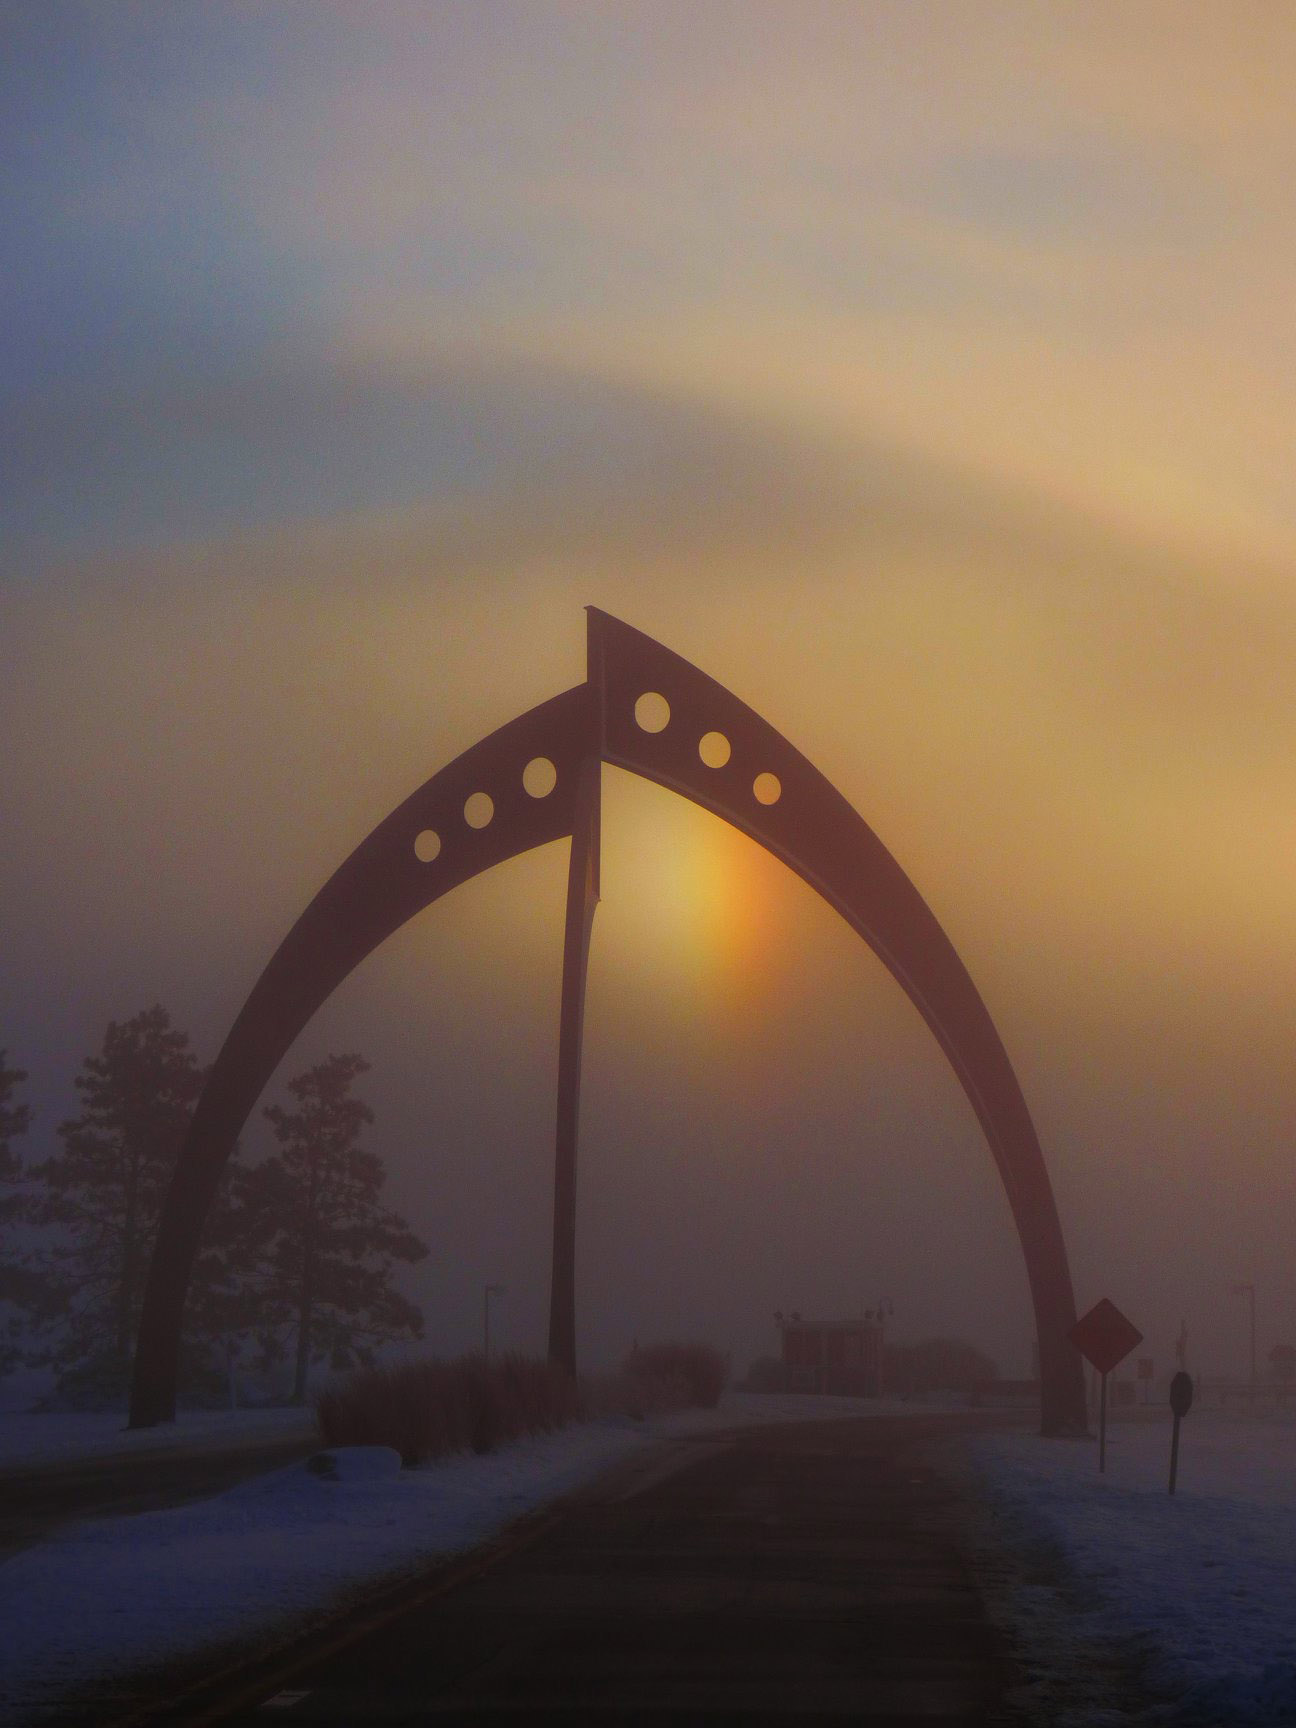 (2/3) A rainbow is visible just inside the sculpture. Photo: Amy Scroggins, nature, sky, fog, sun, rainbow, sculpture, Broken Symmetry, fog, landscape, rainbow